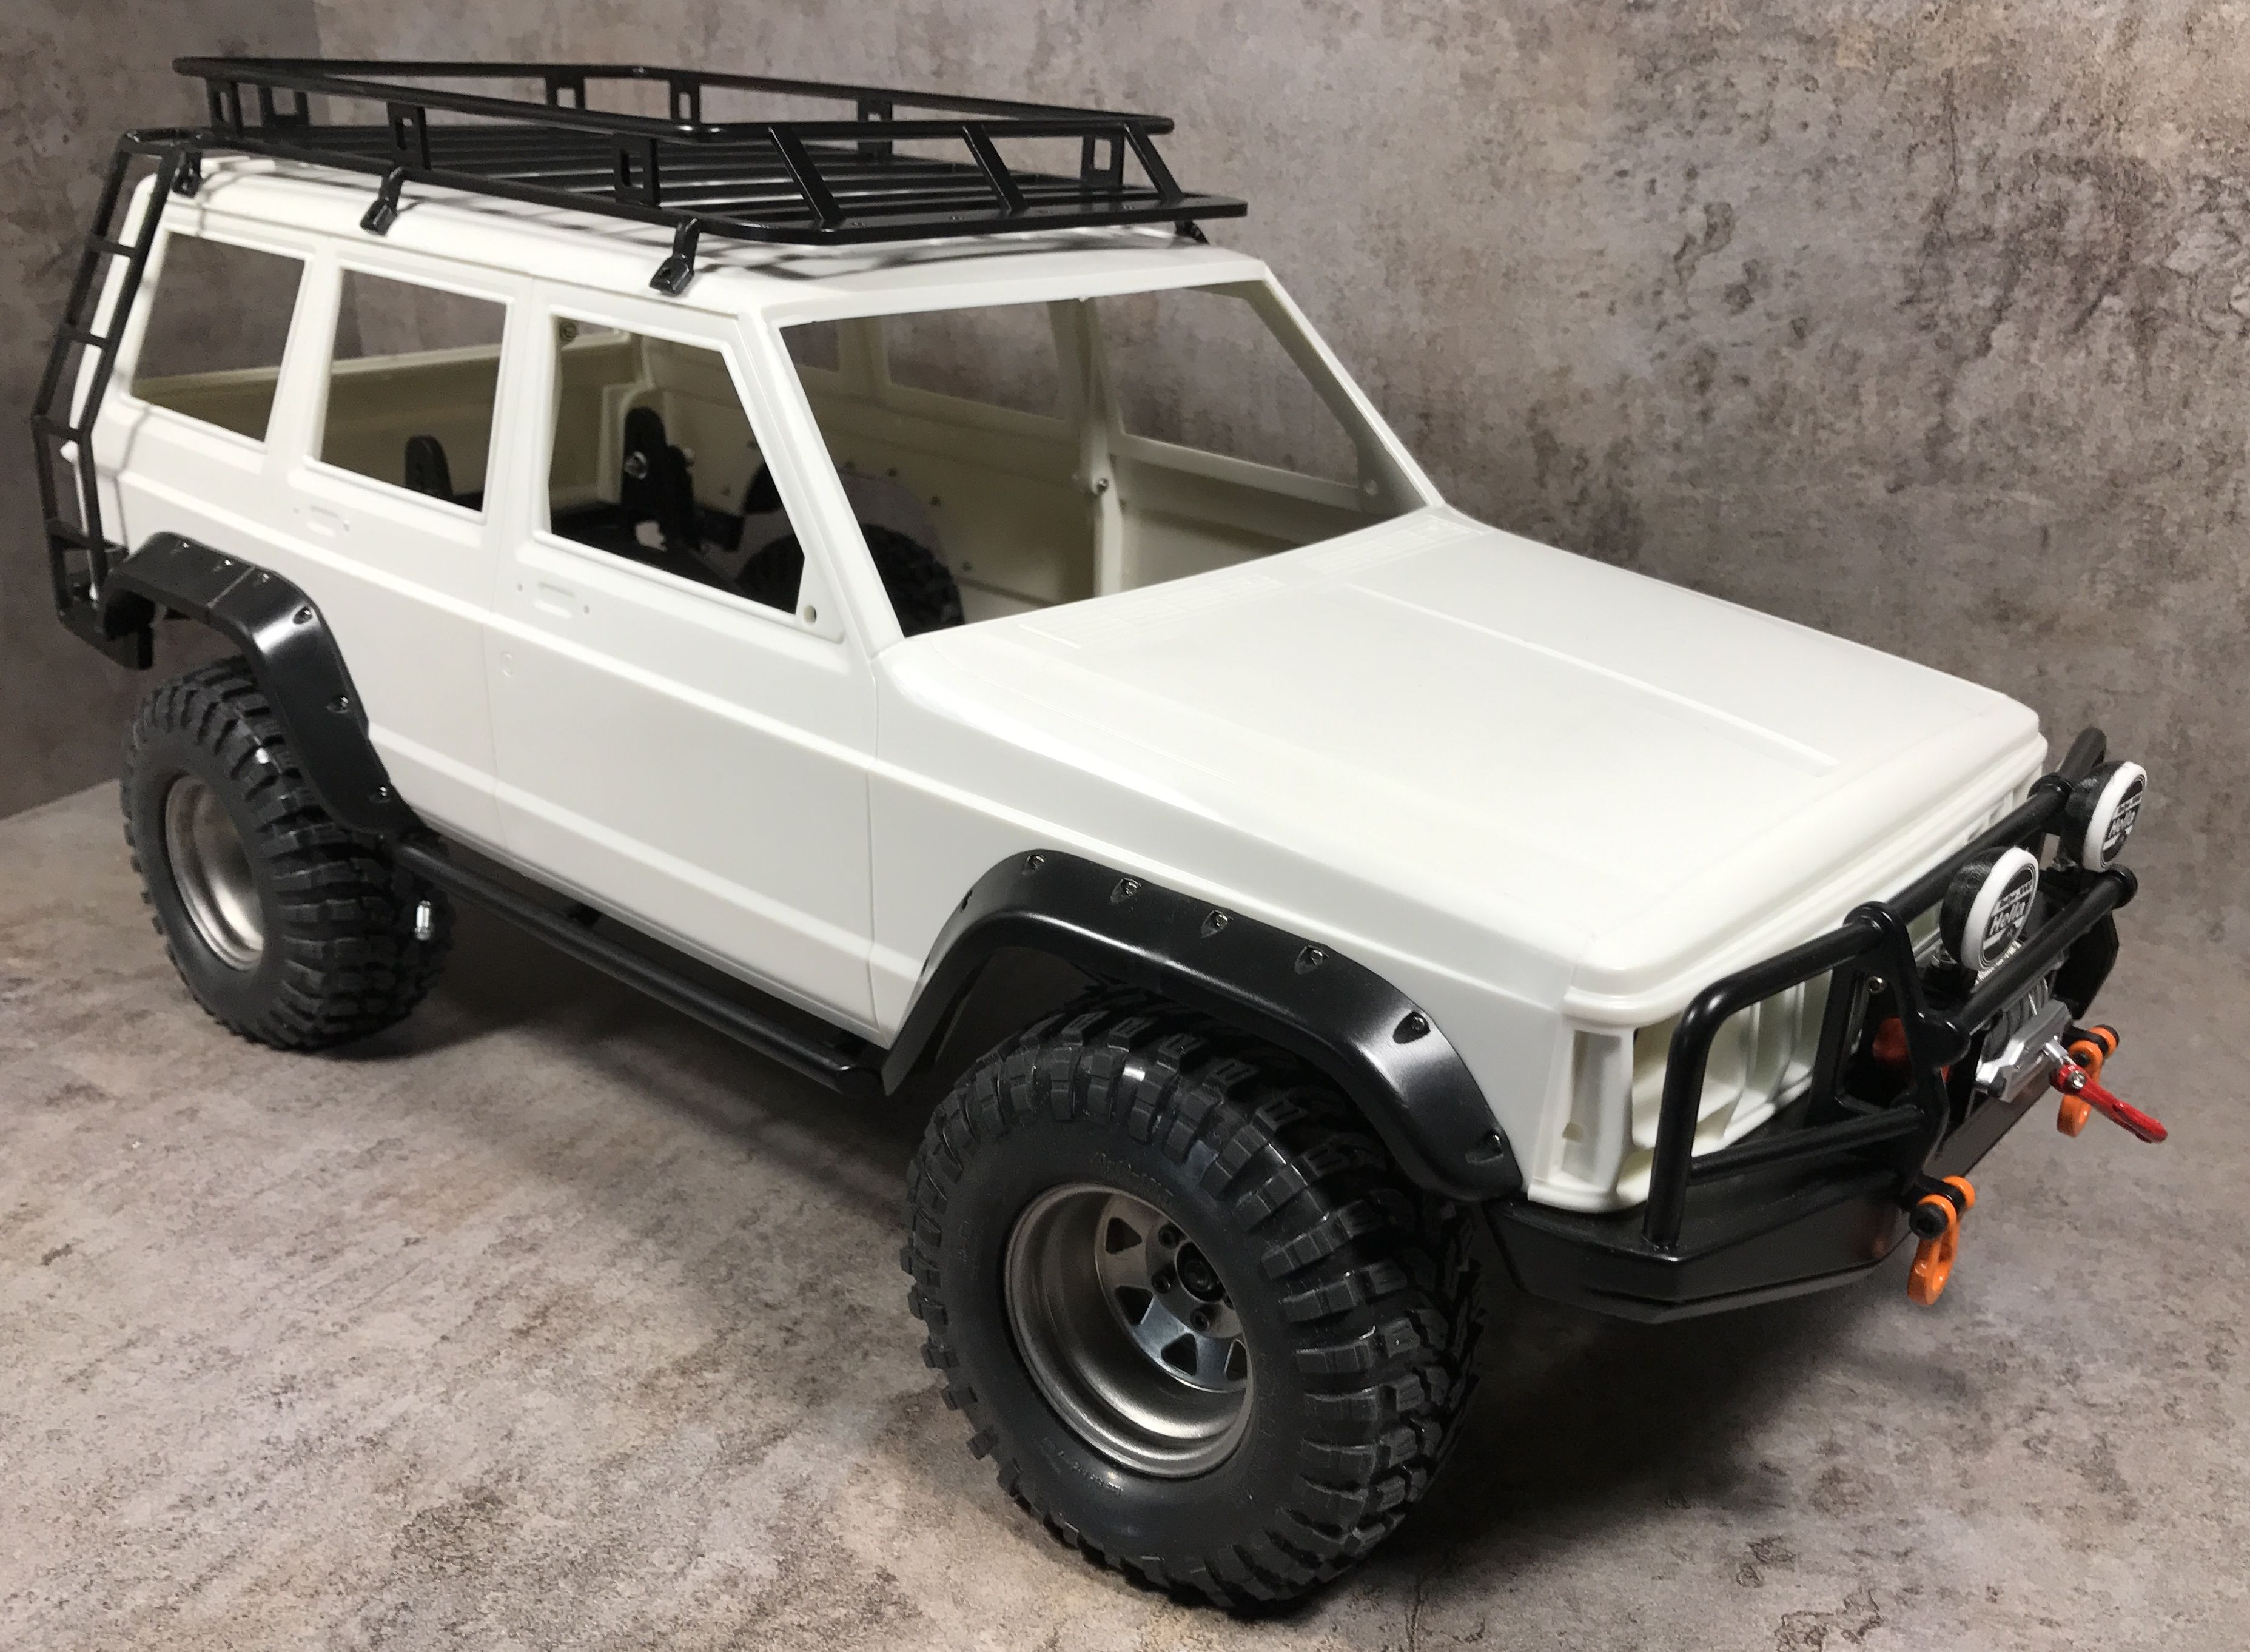 Expedition Ii Roof Rack Ladder For Jeep Xj Mex Jeep Xj Roof